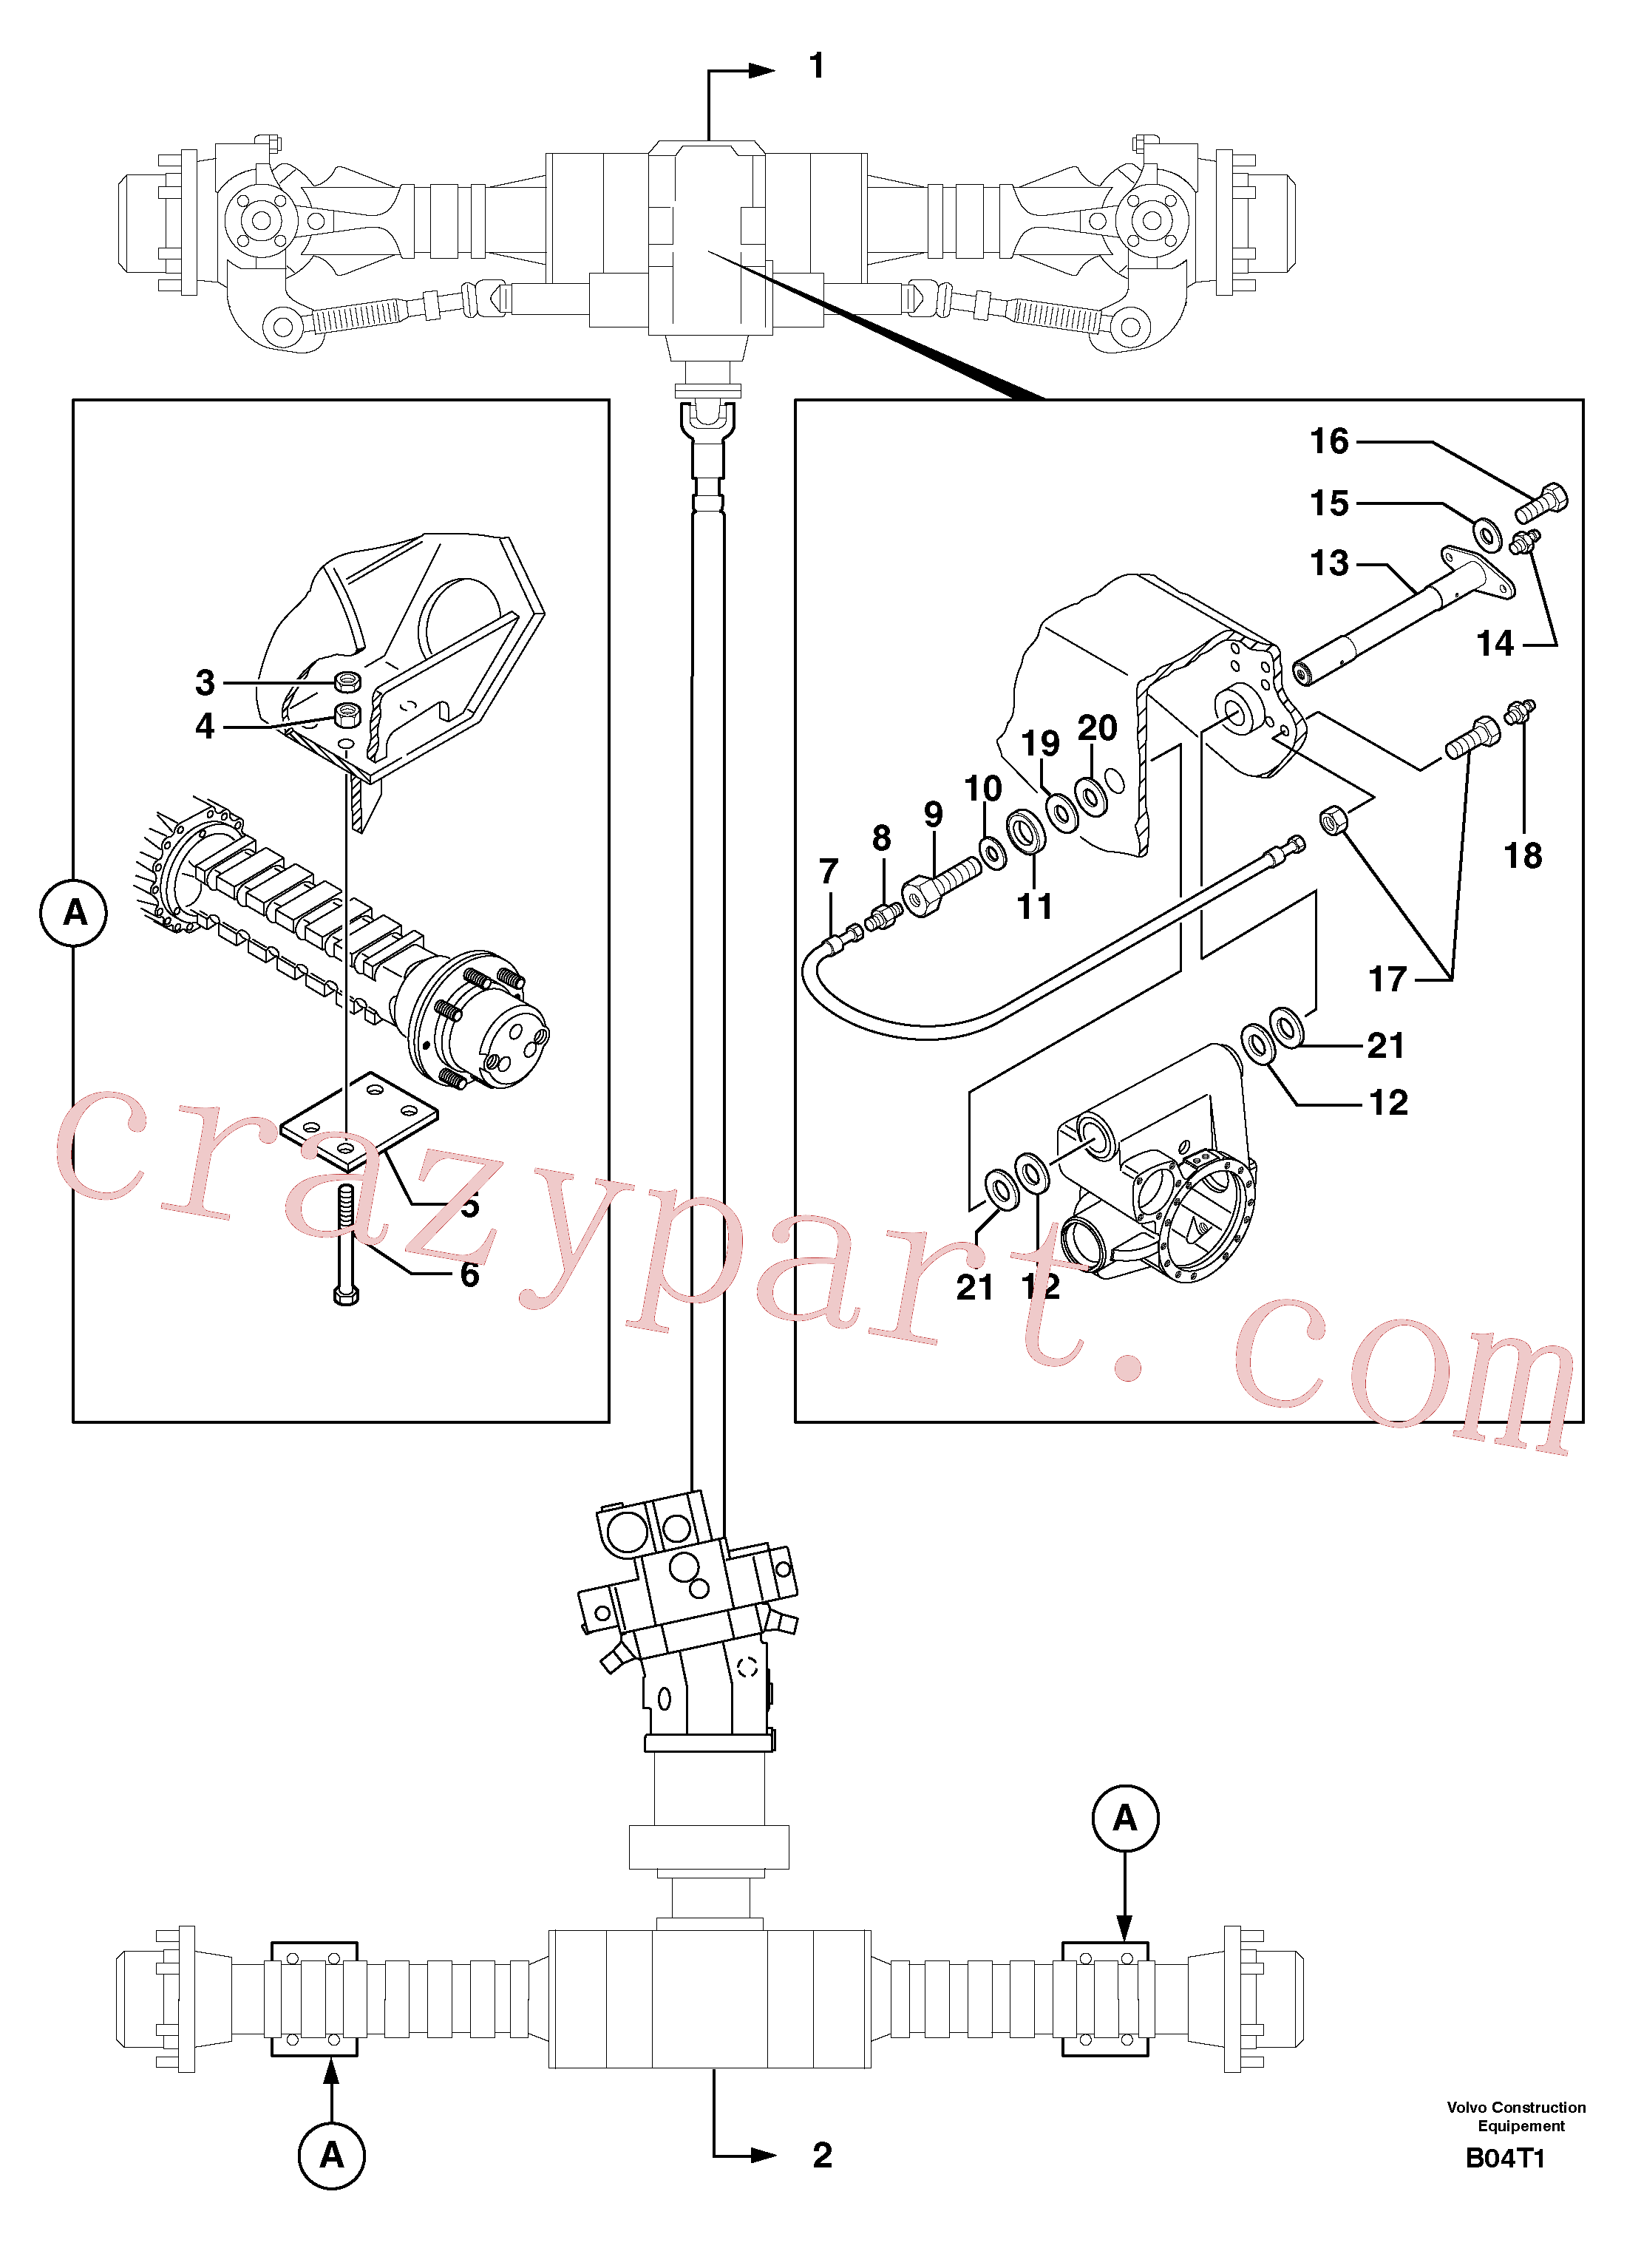 PJ4400027 for Volvo Axle cradles and mountings(B04T1 assembly)